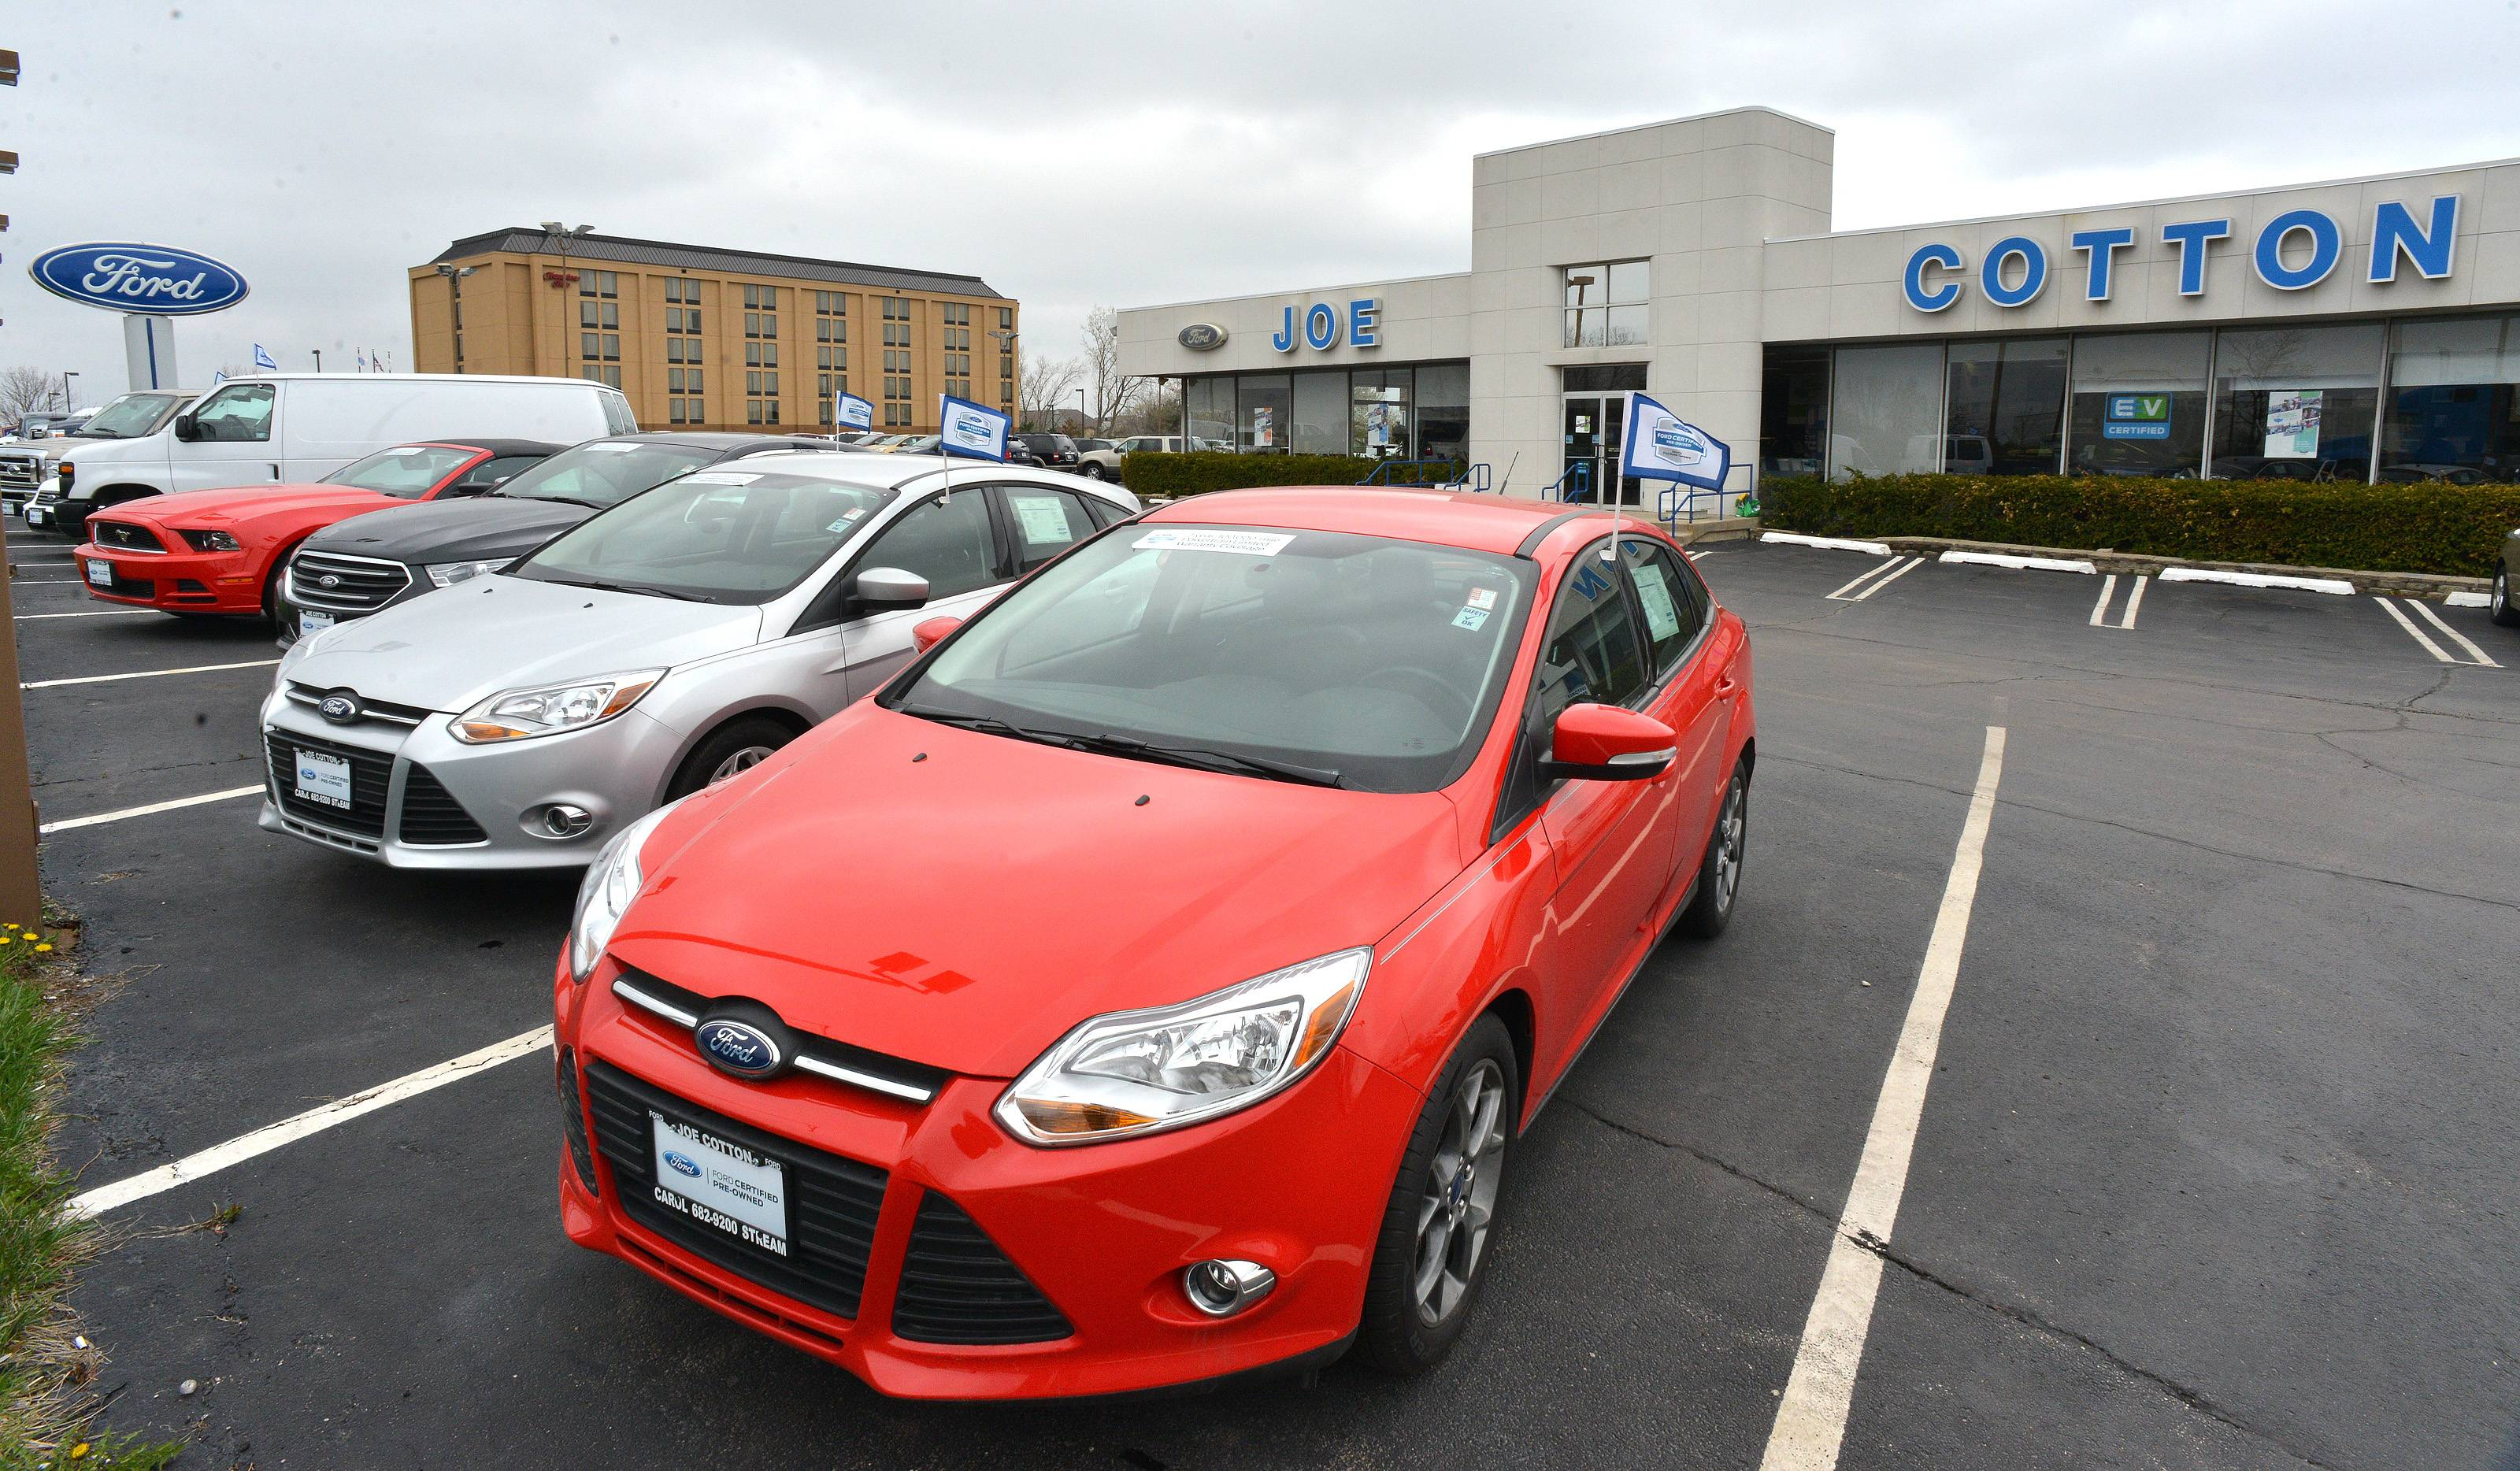 Used cars on display at Joe Cotton Ford in Carol Stream.